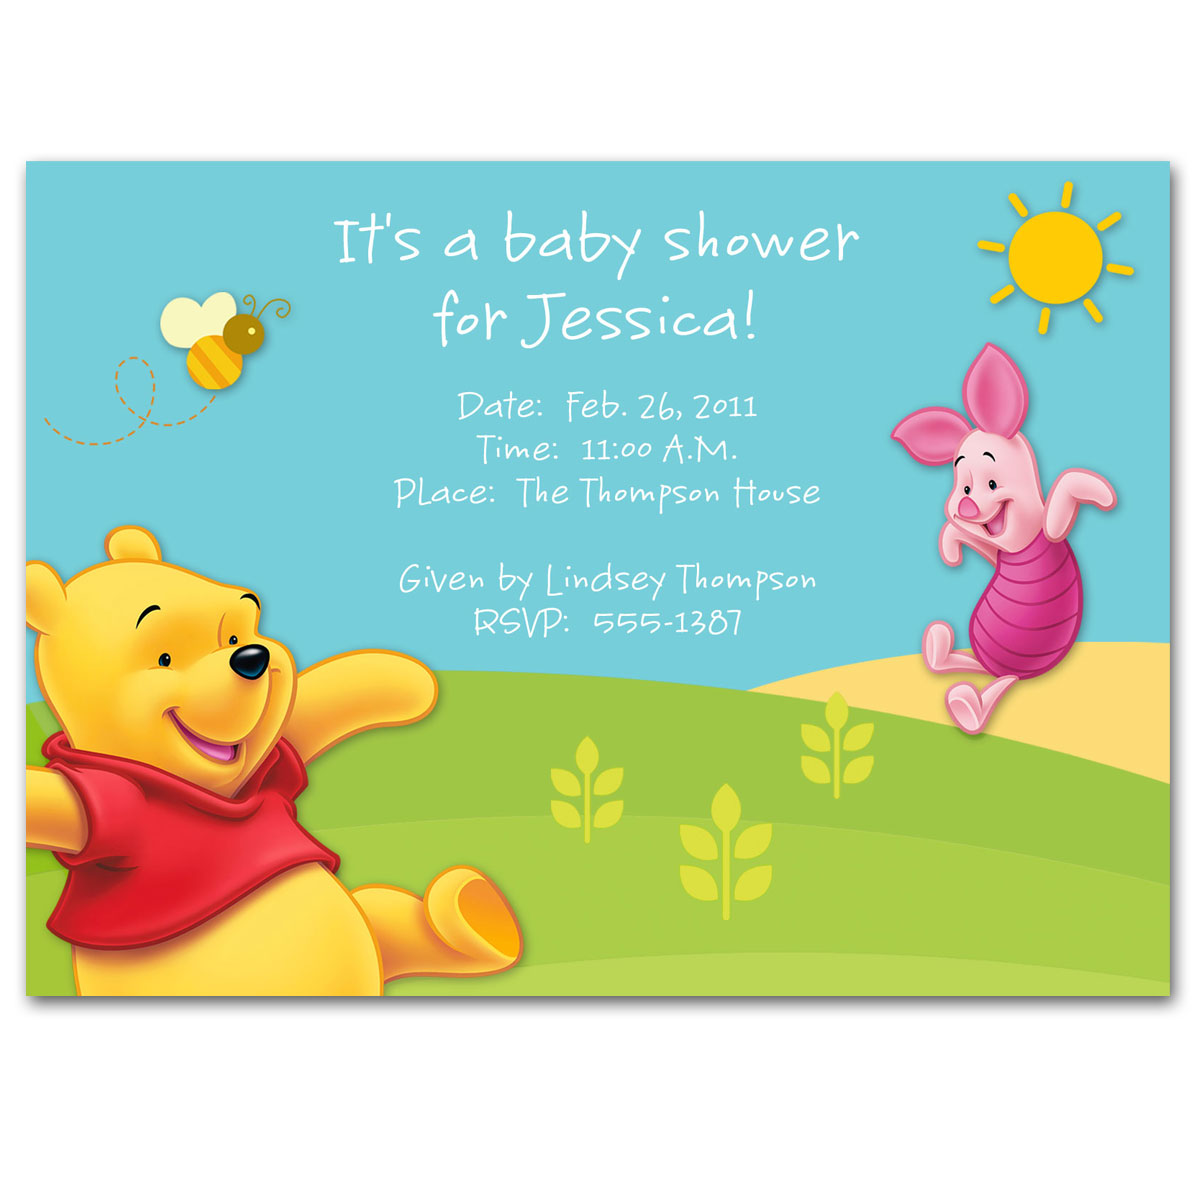 Winnie the pooh showering clipart png freeuse library WINNIE THE POOH Baby Shower   Clipart Panda - Free Clipart ... png freeuse library